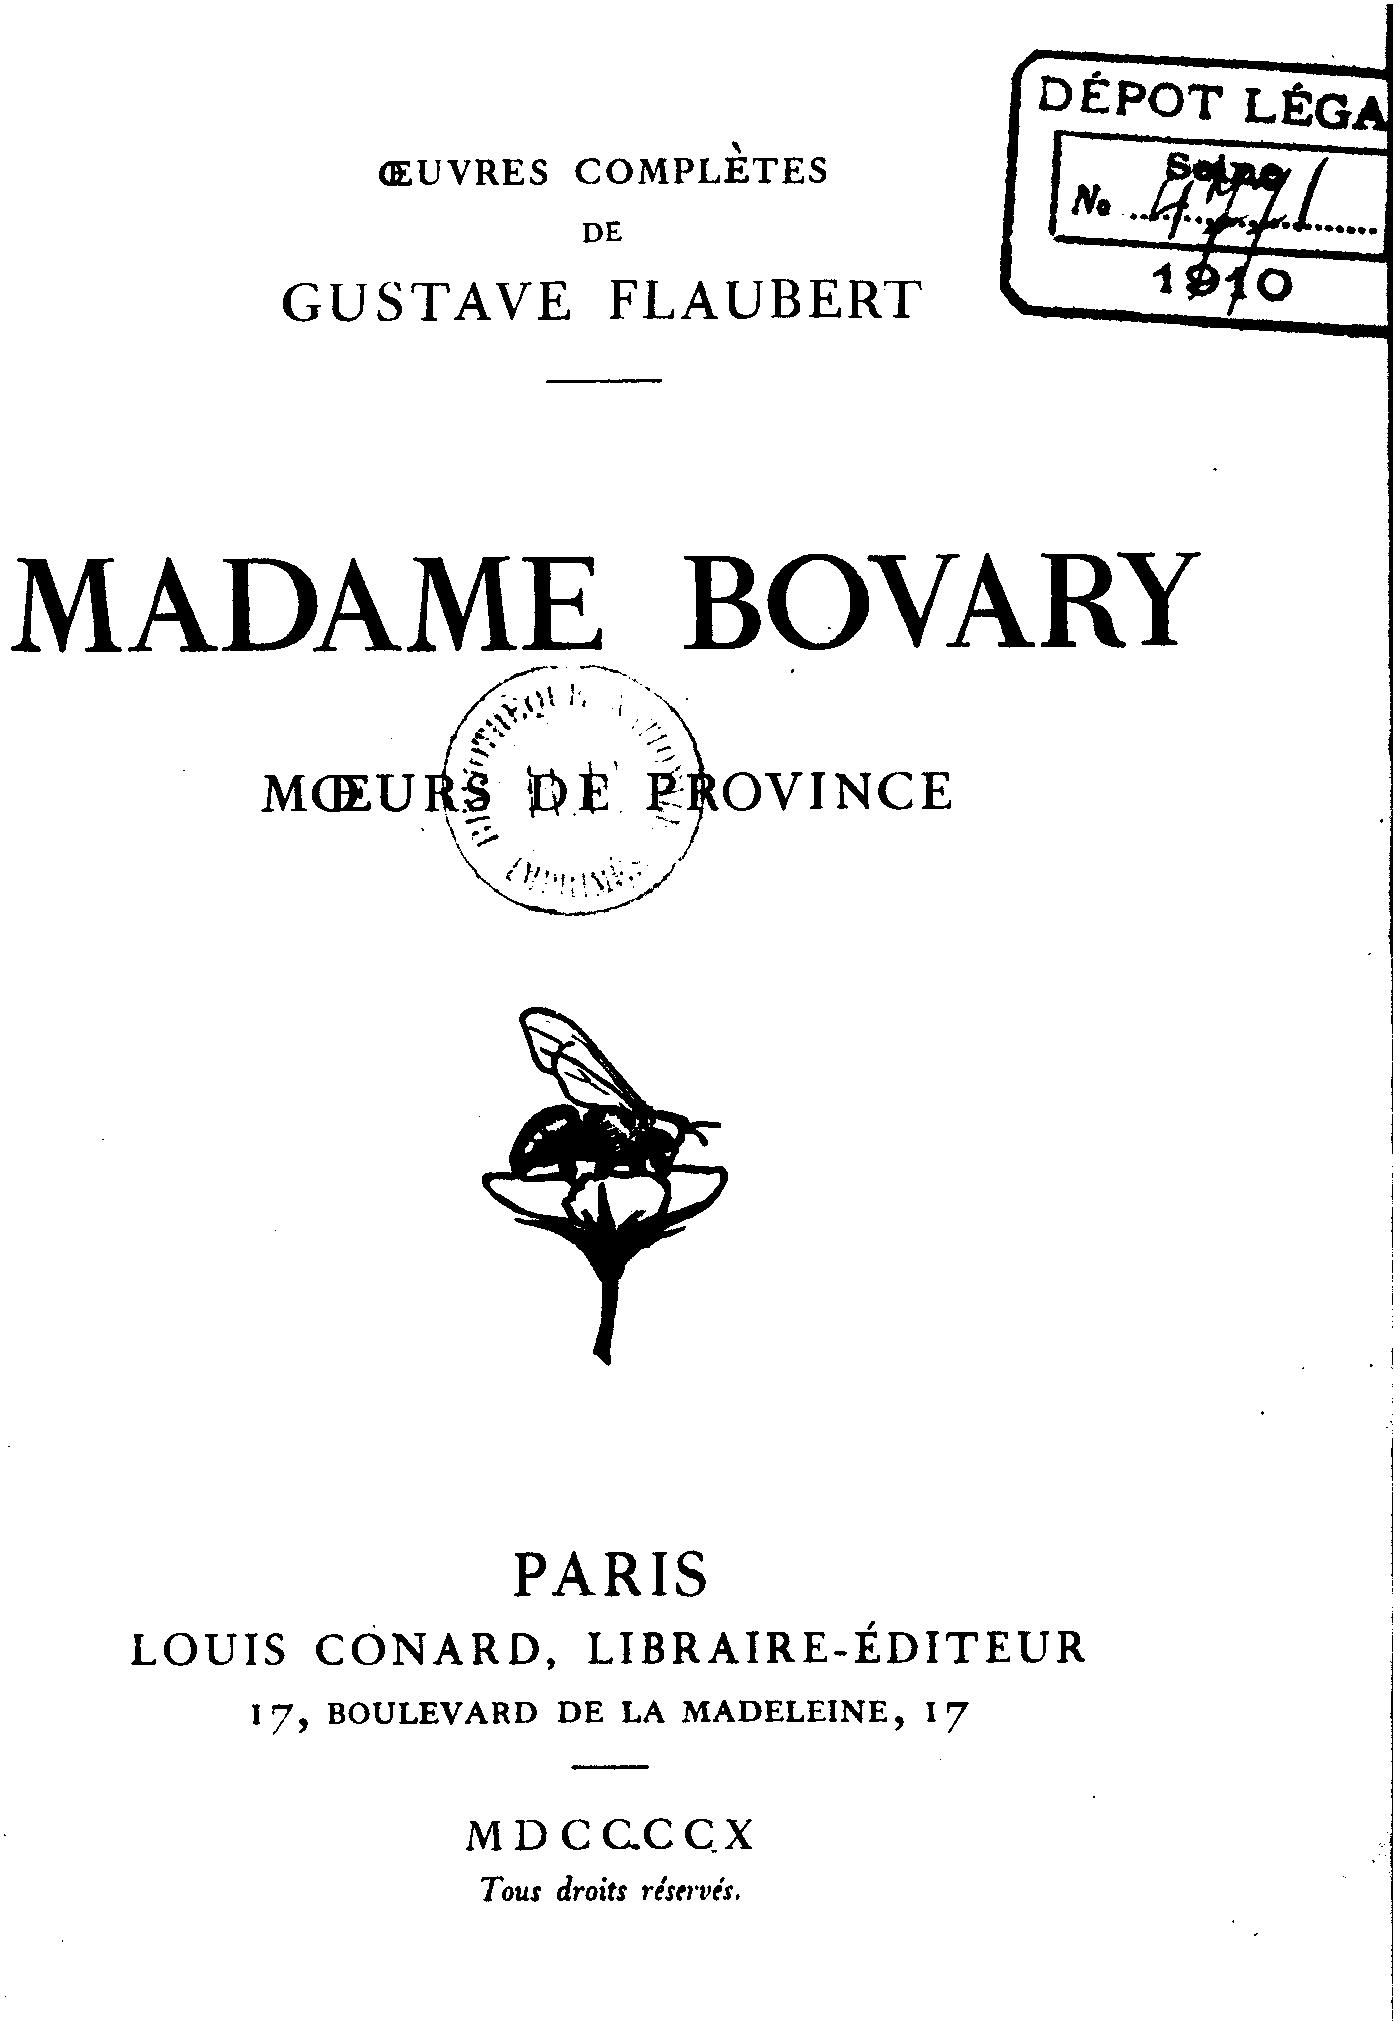 https://upload.wikimedia.org/wikipedia/commons/b/bf/Madamebovary-vi.jpg